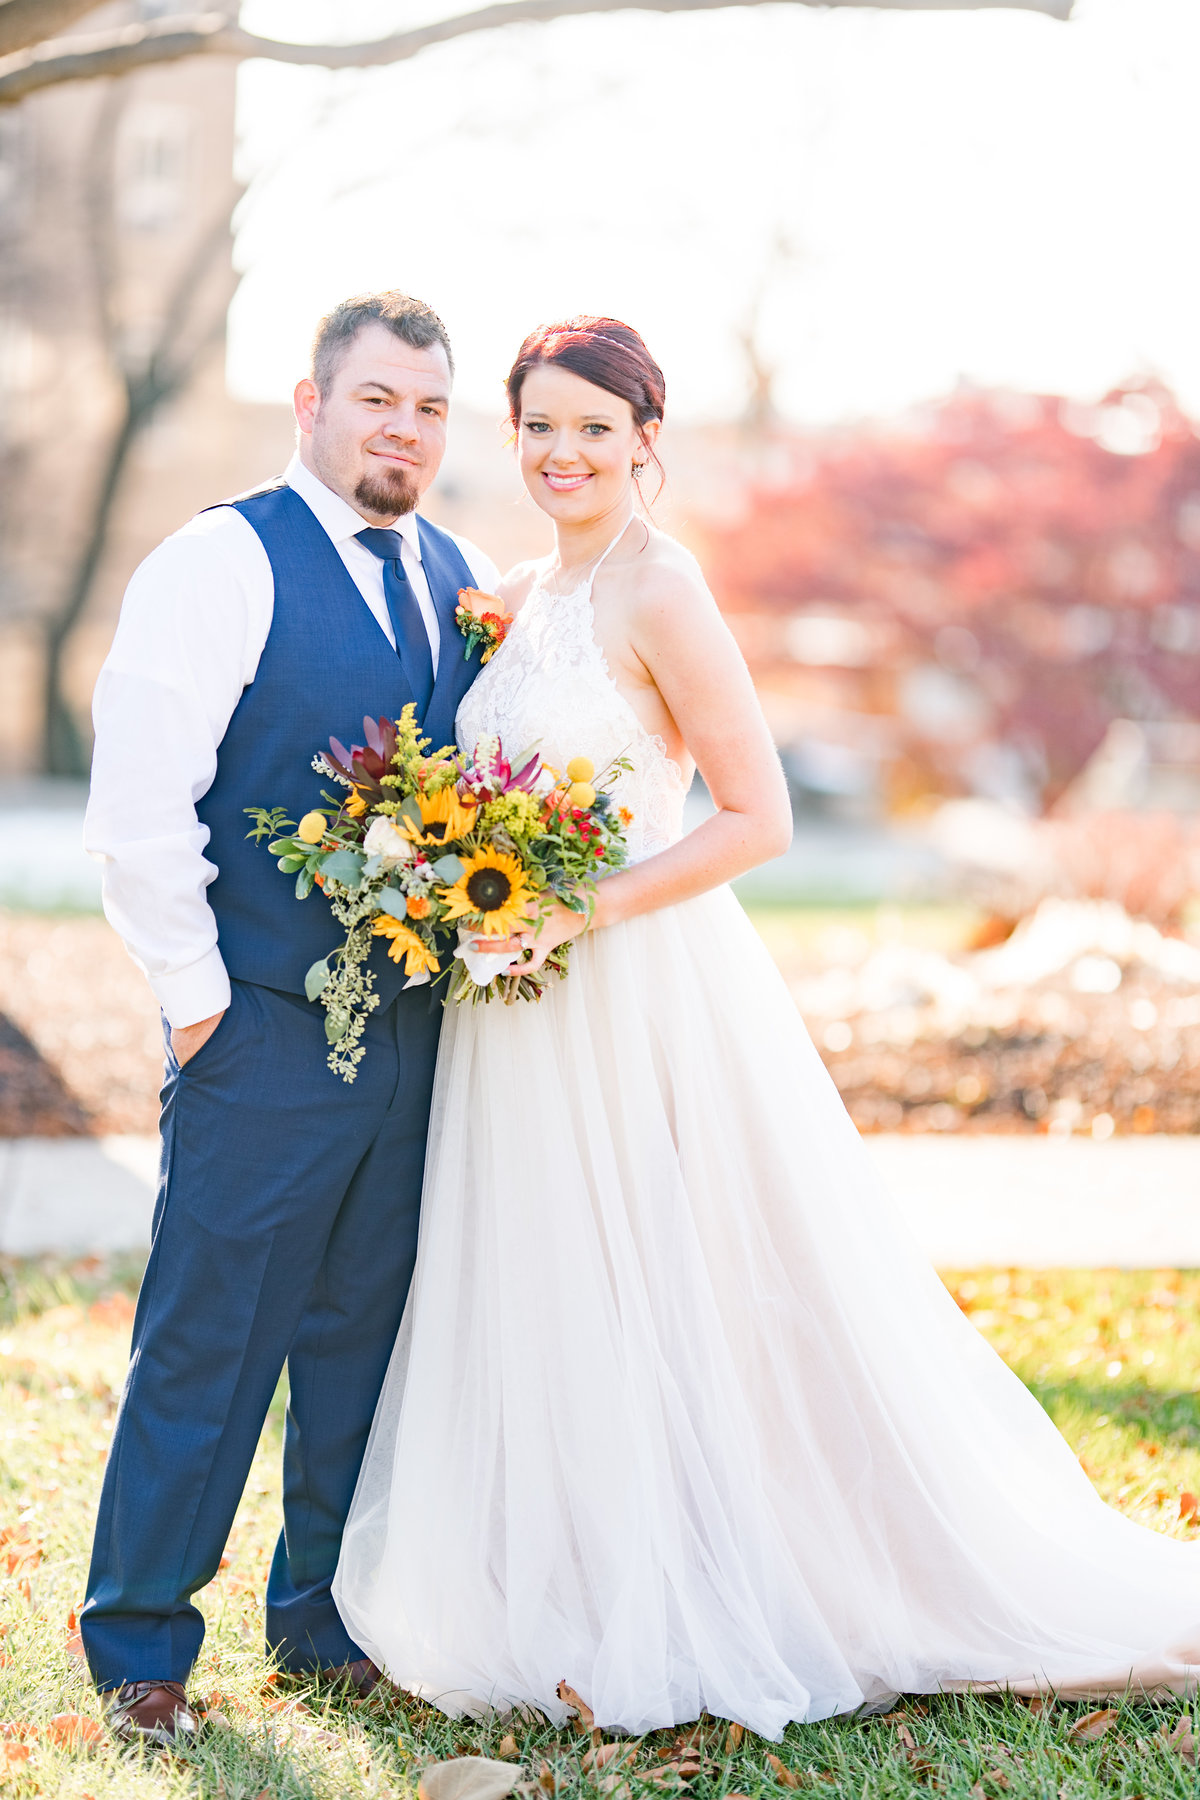 Couple Portraits Wedding Brewery Cincinnati Ohio Colorful Flowers-51